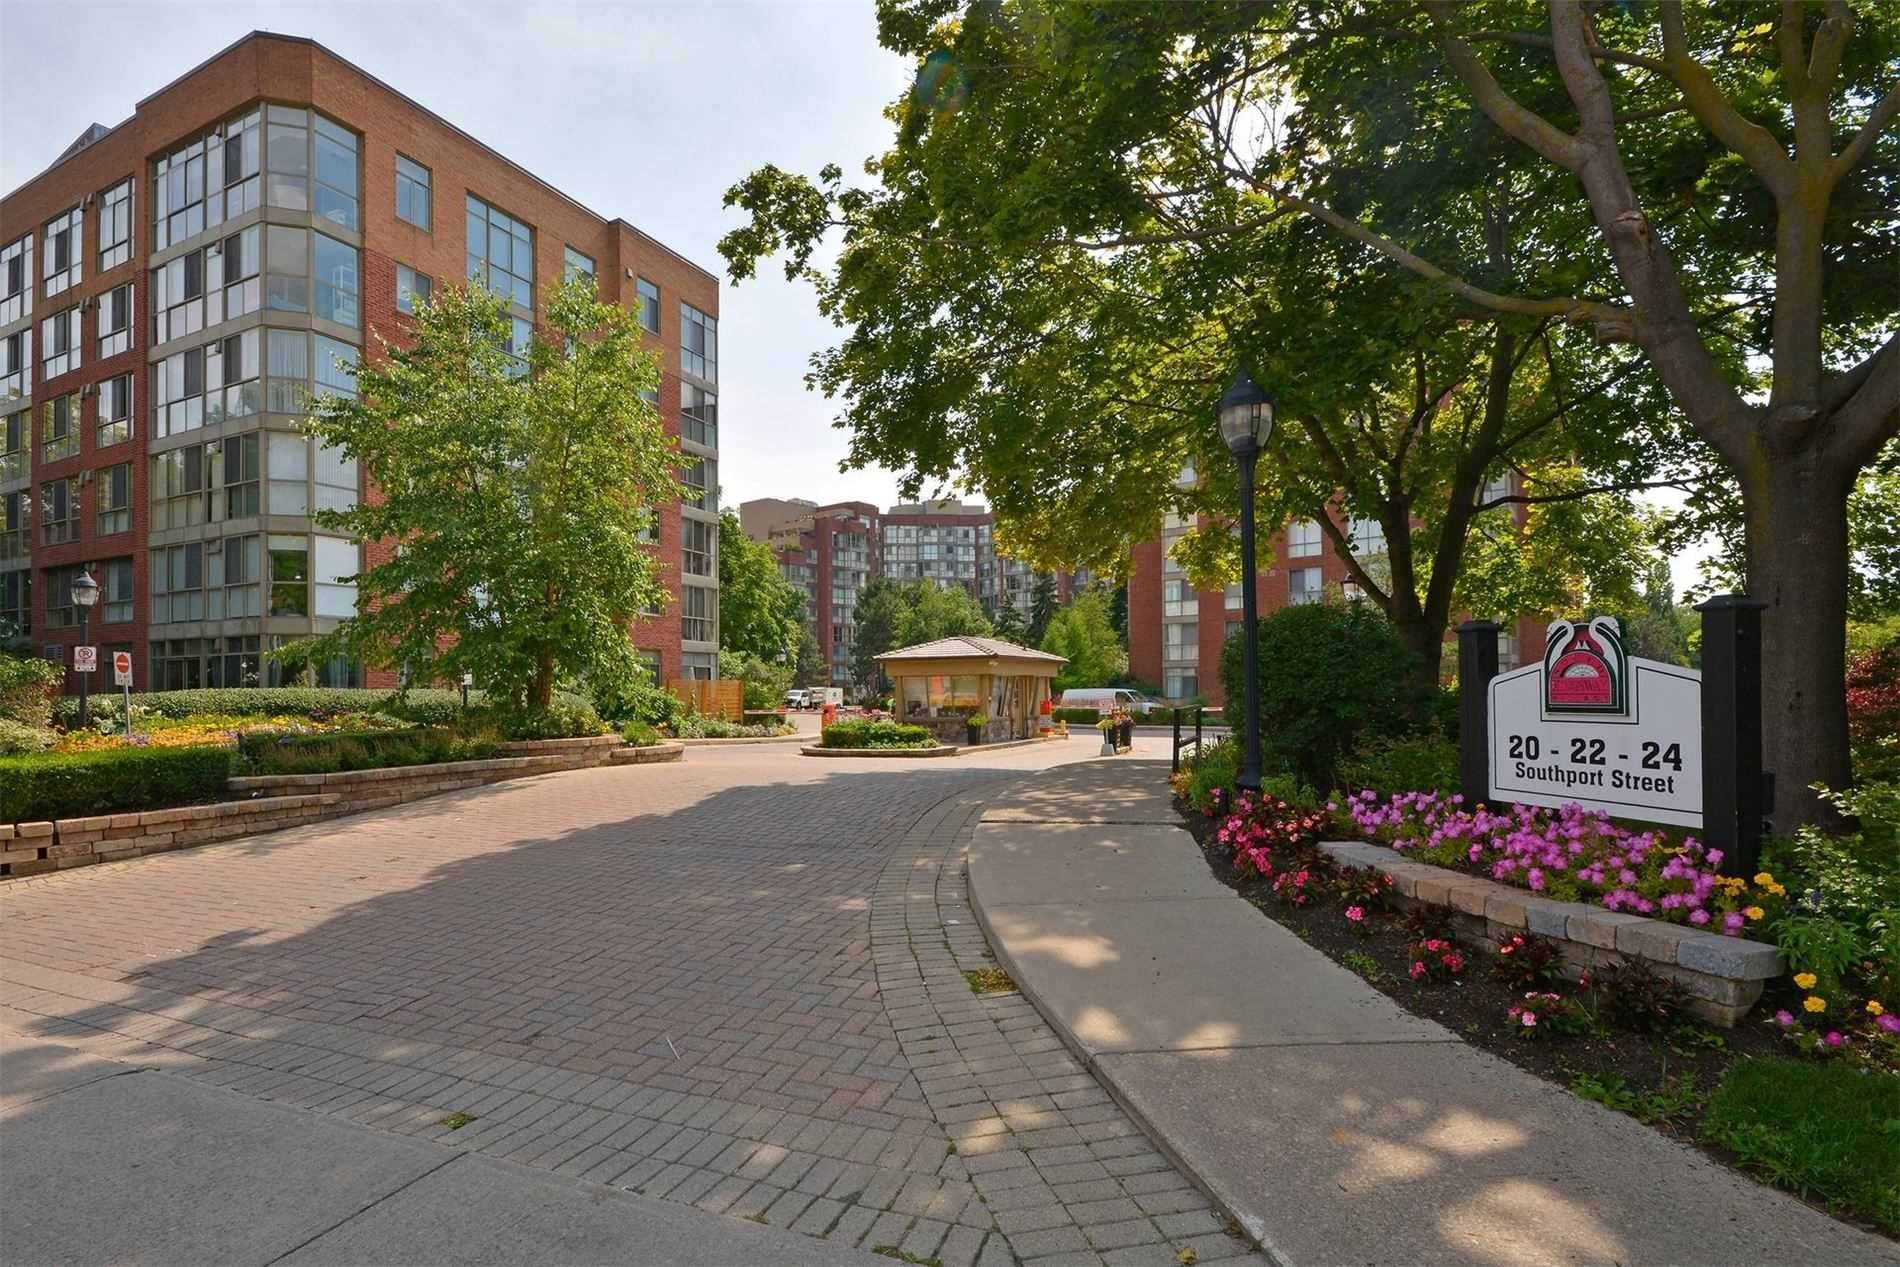 20 Southport St, unit 215 for rent in Toronto - image #1